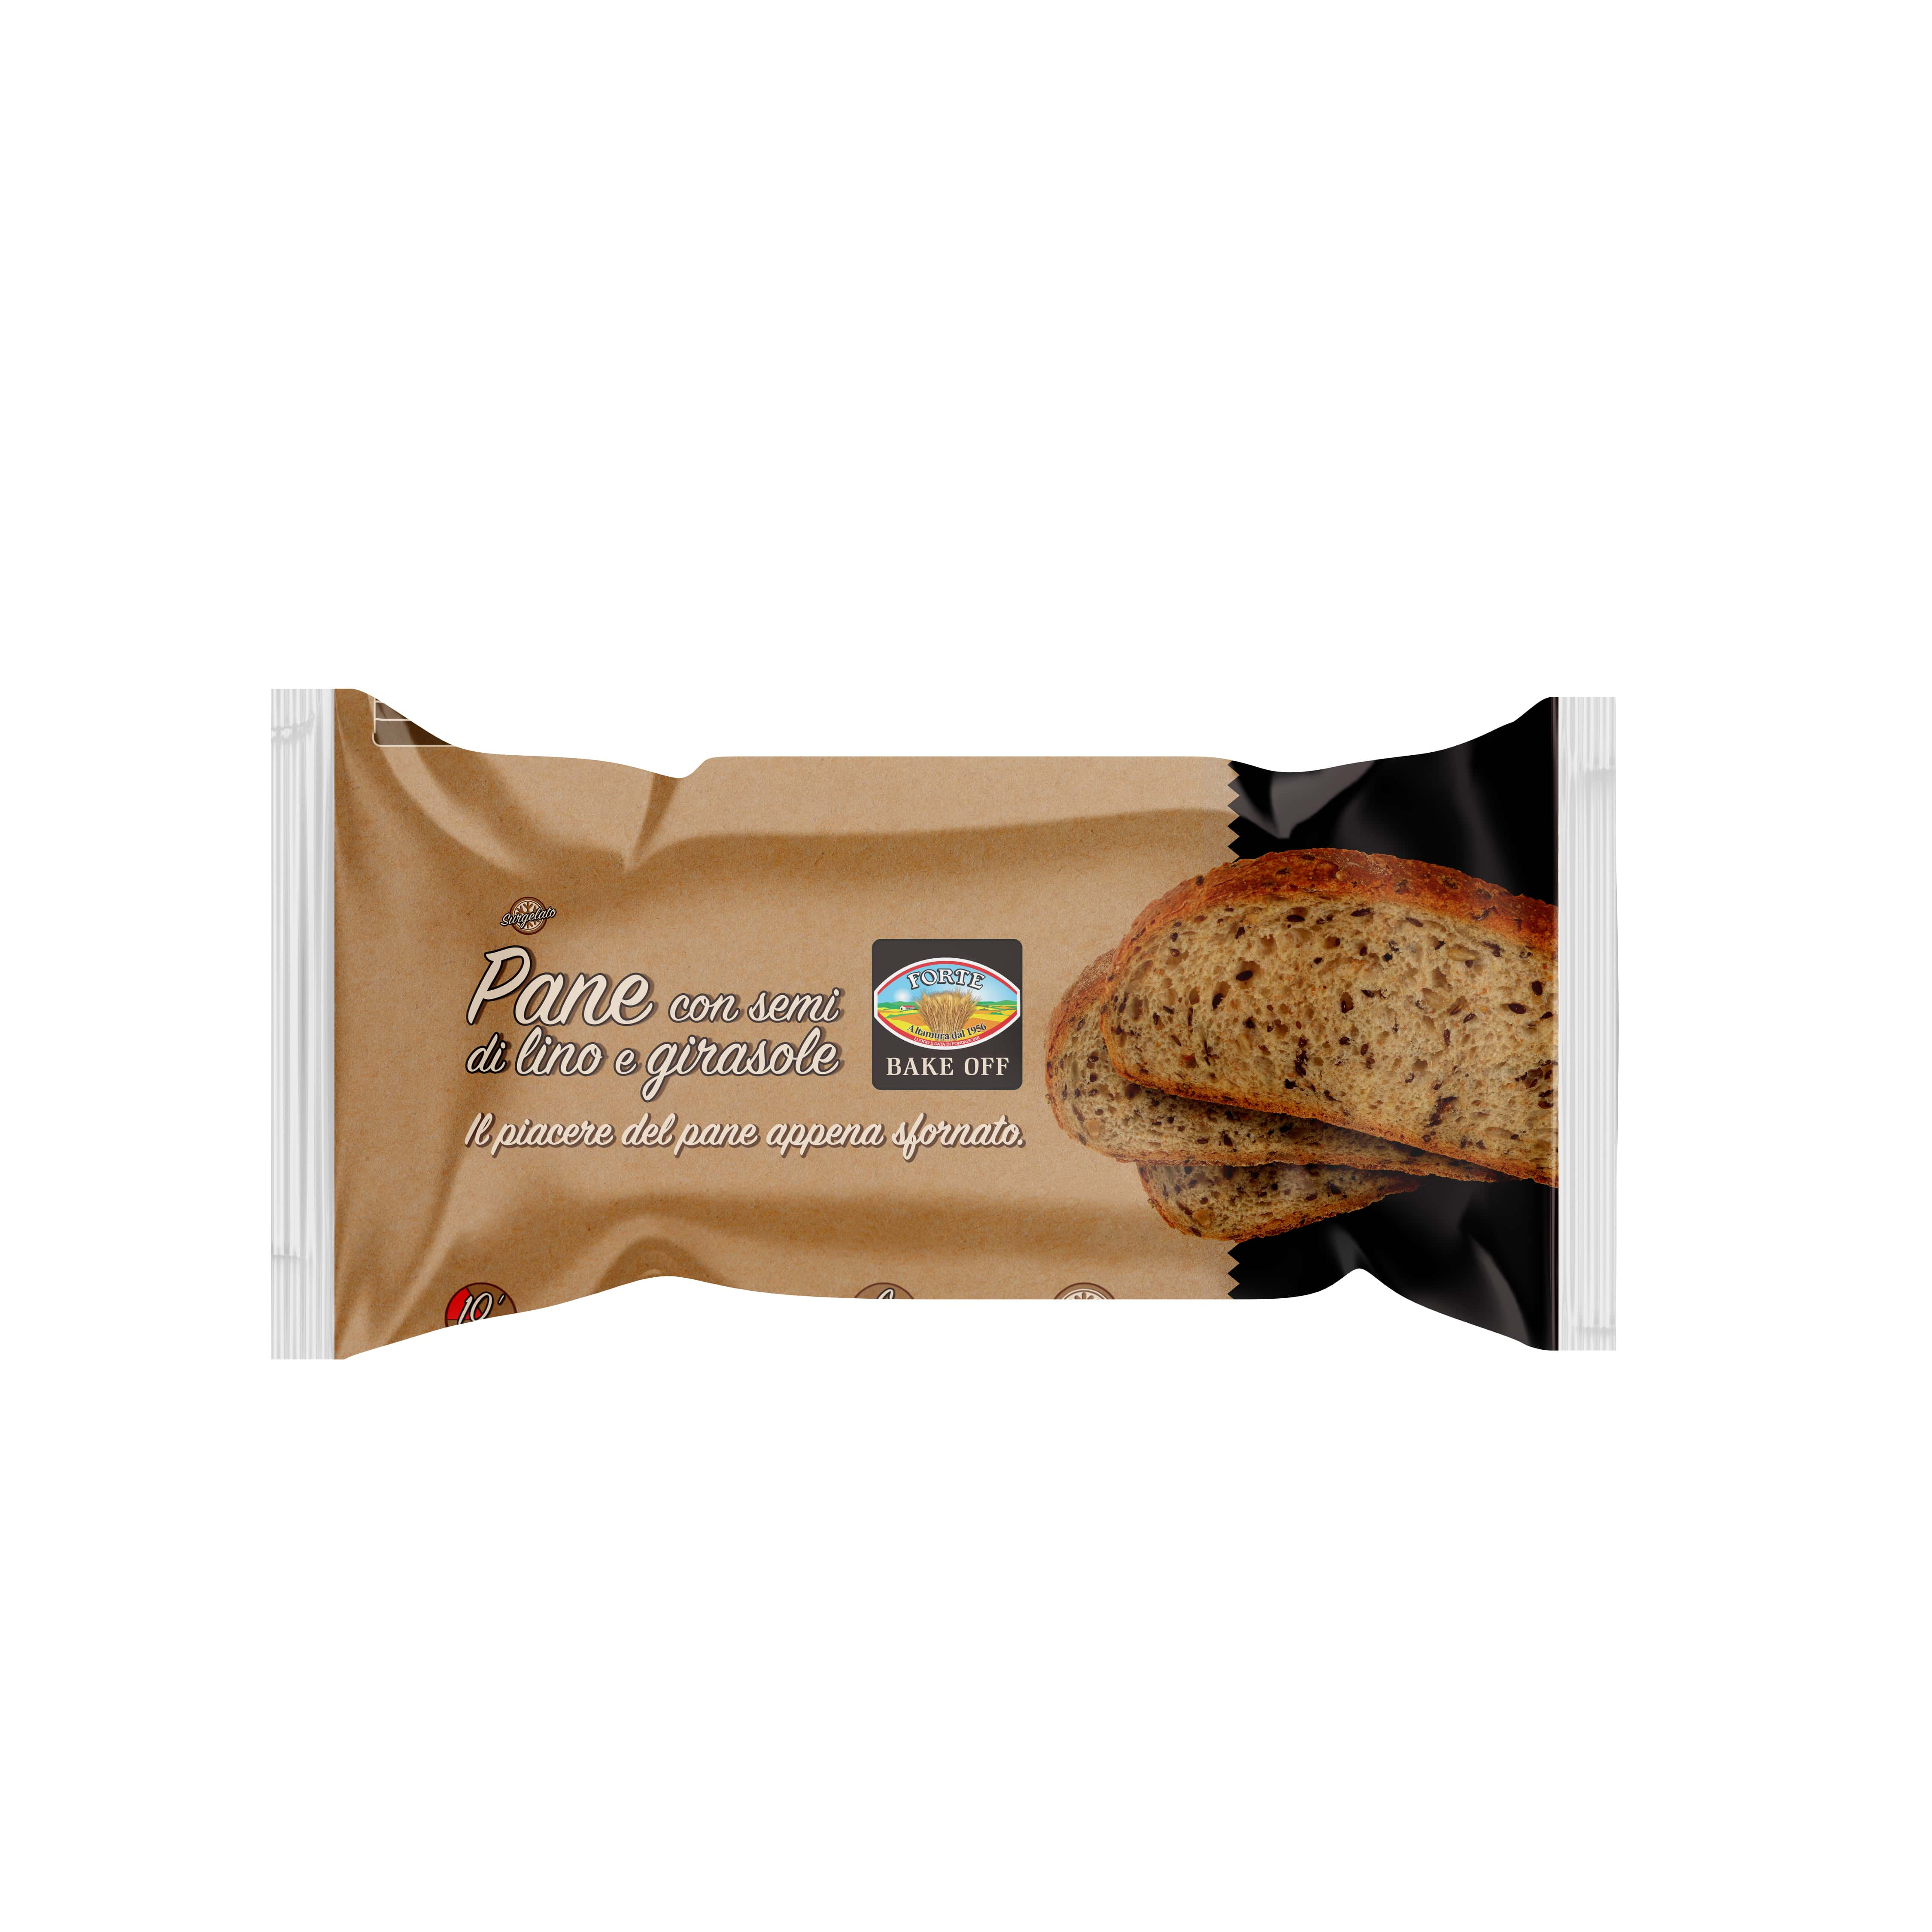 Forte Bake At Home Sliced Bread with linseed and sunflower seeds 400g 6 SLICES